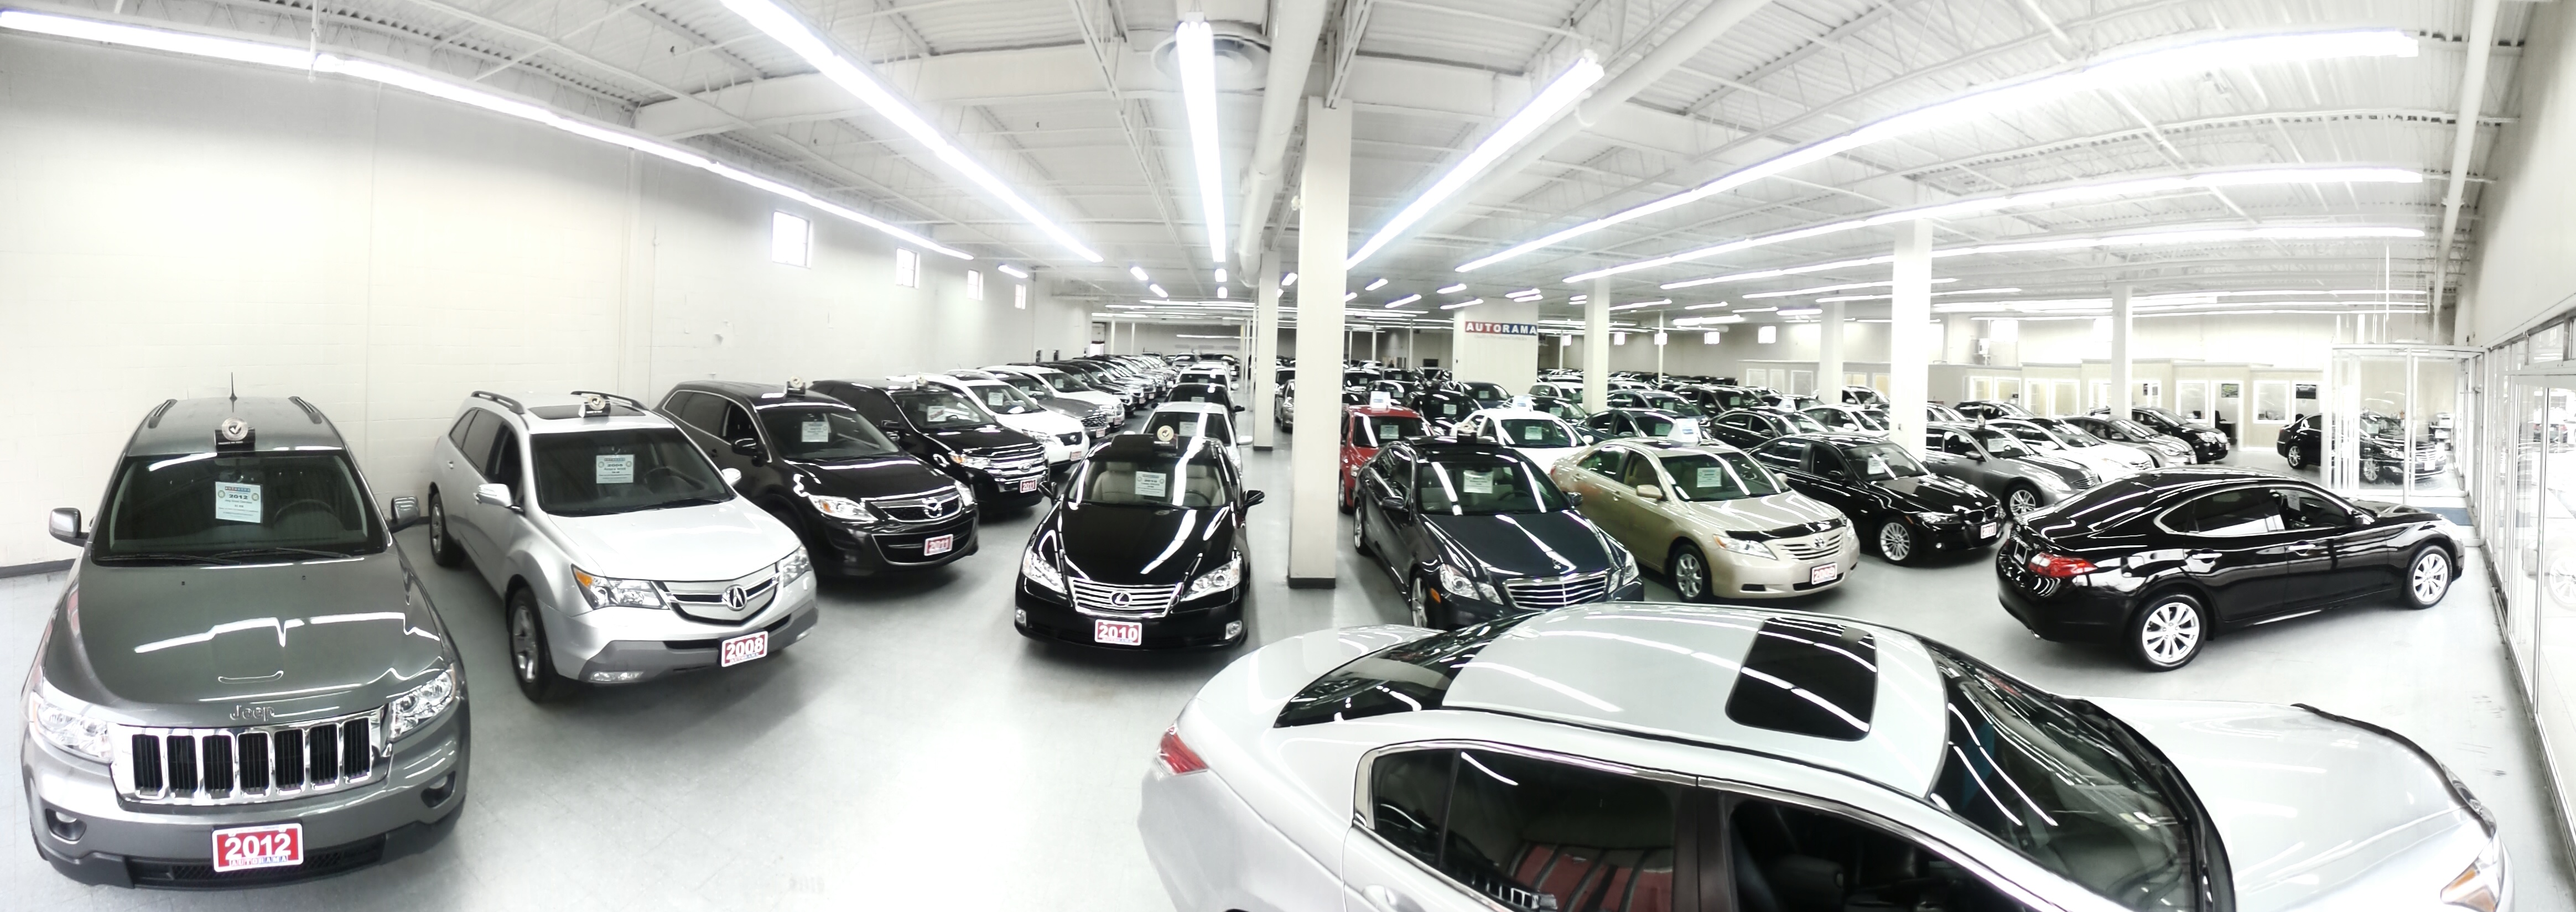 Used Auto Dealers Luxury Investing In Car Dealerships – How to Do It Right